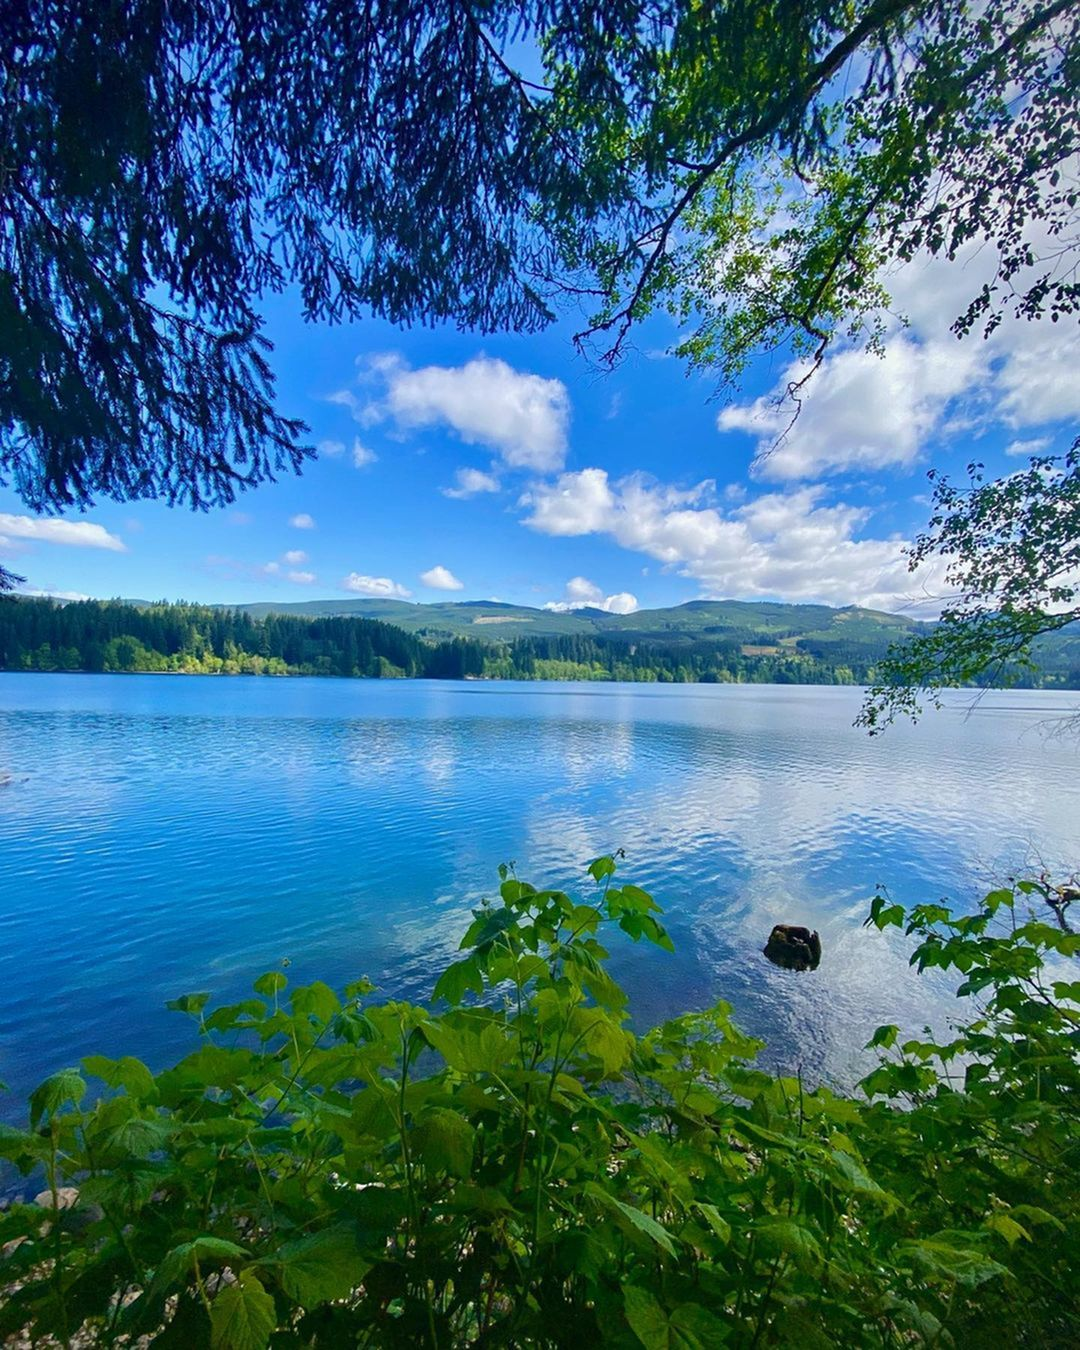 Keeping cool this summer: Lakes and Rivers near Vancouver WA-image